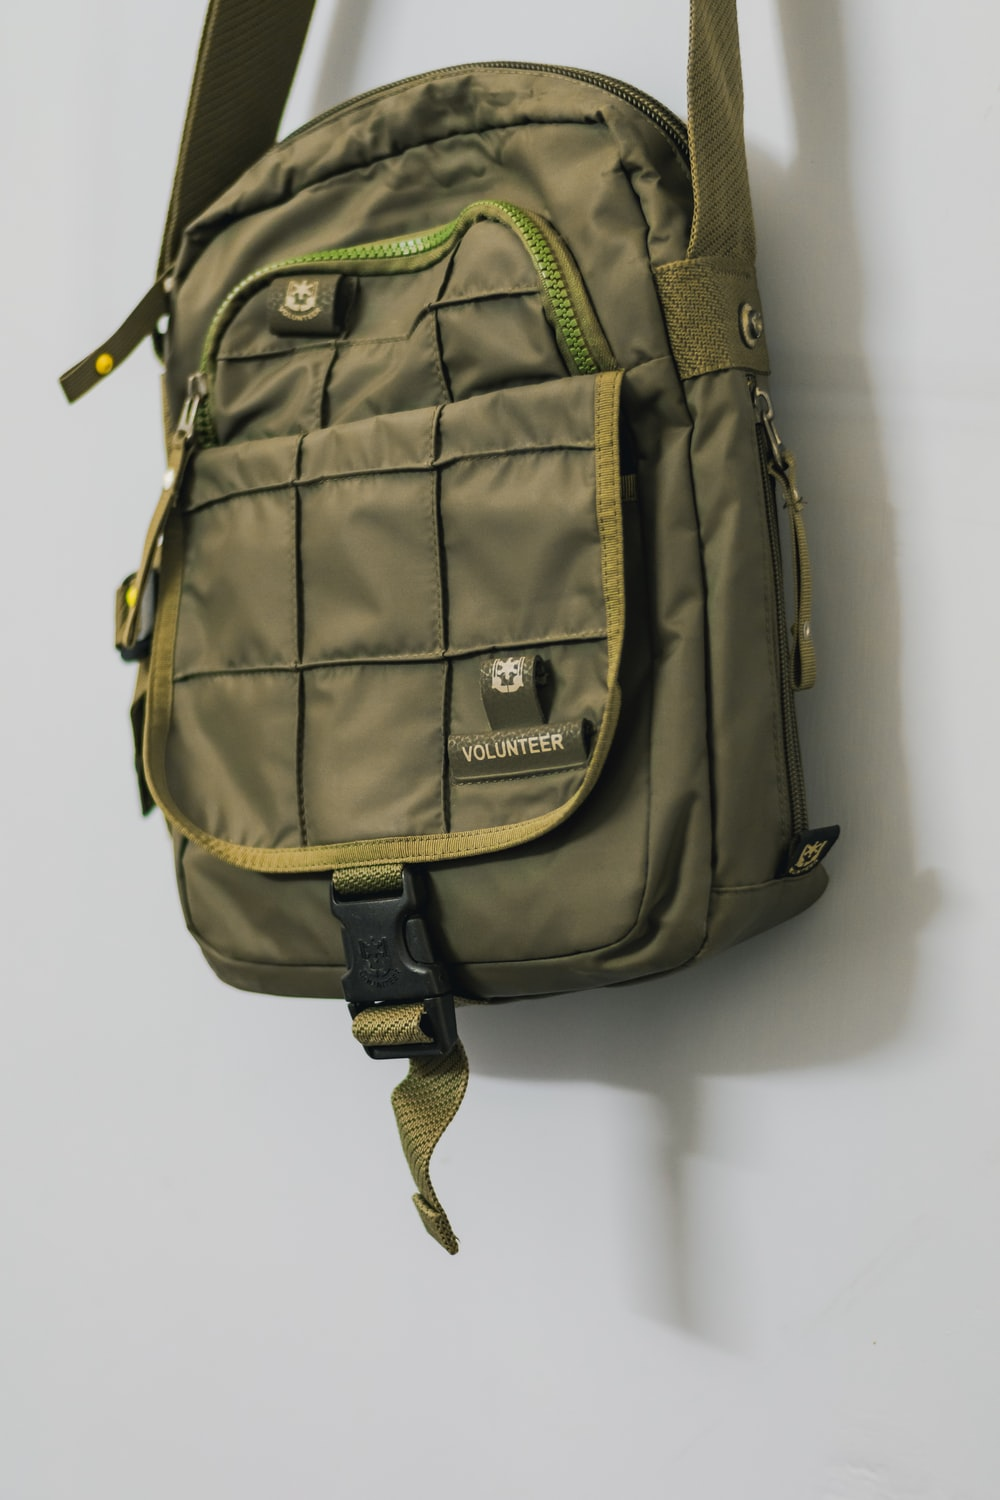 green backpack on white table